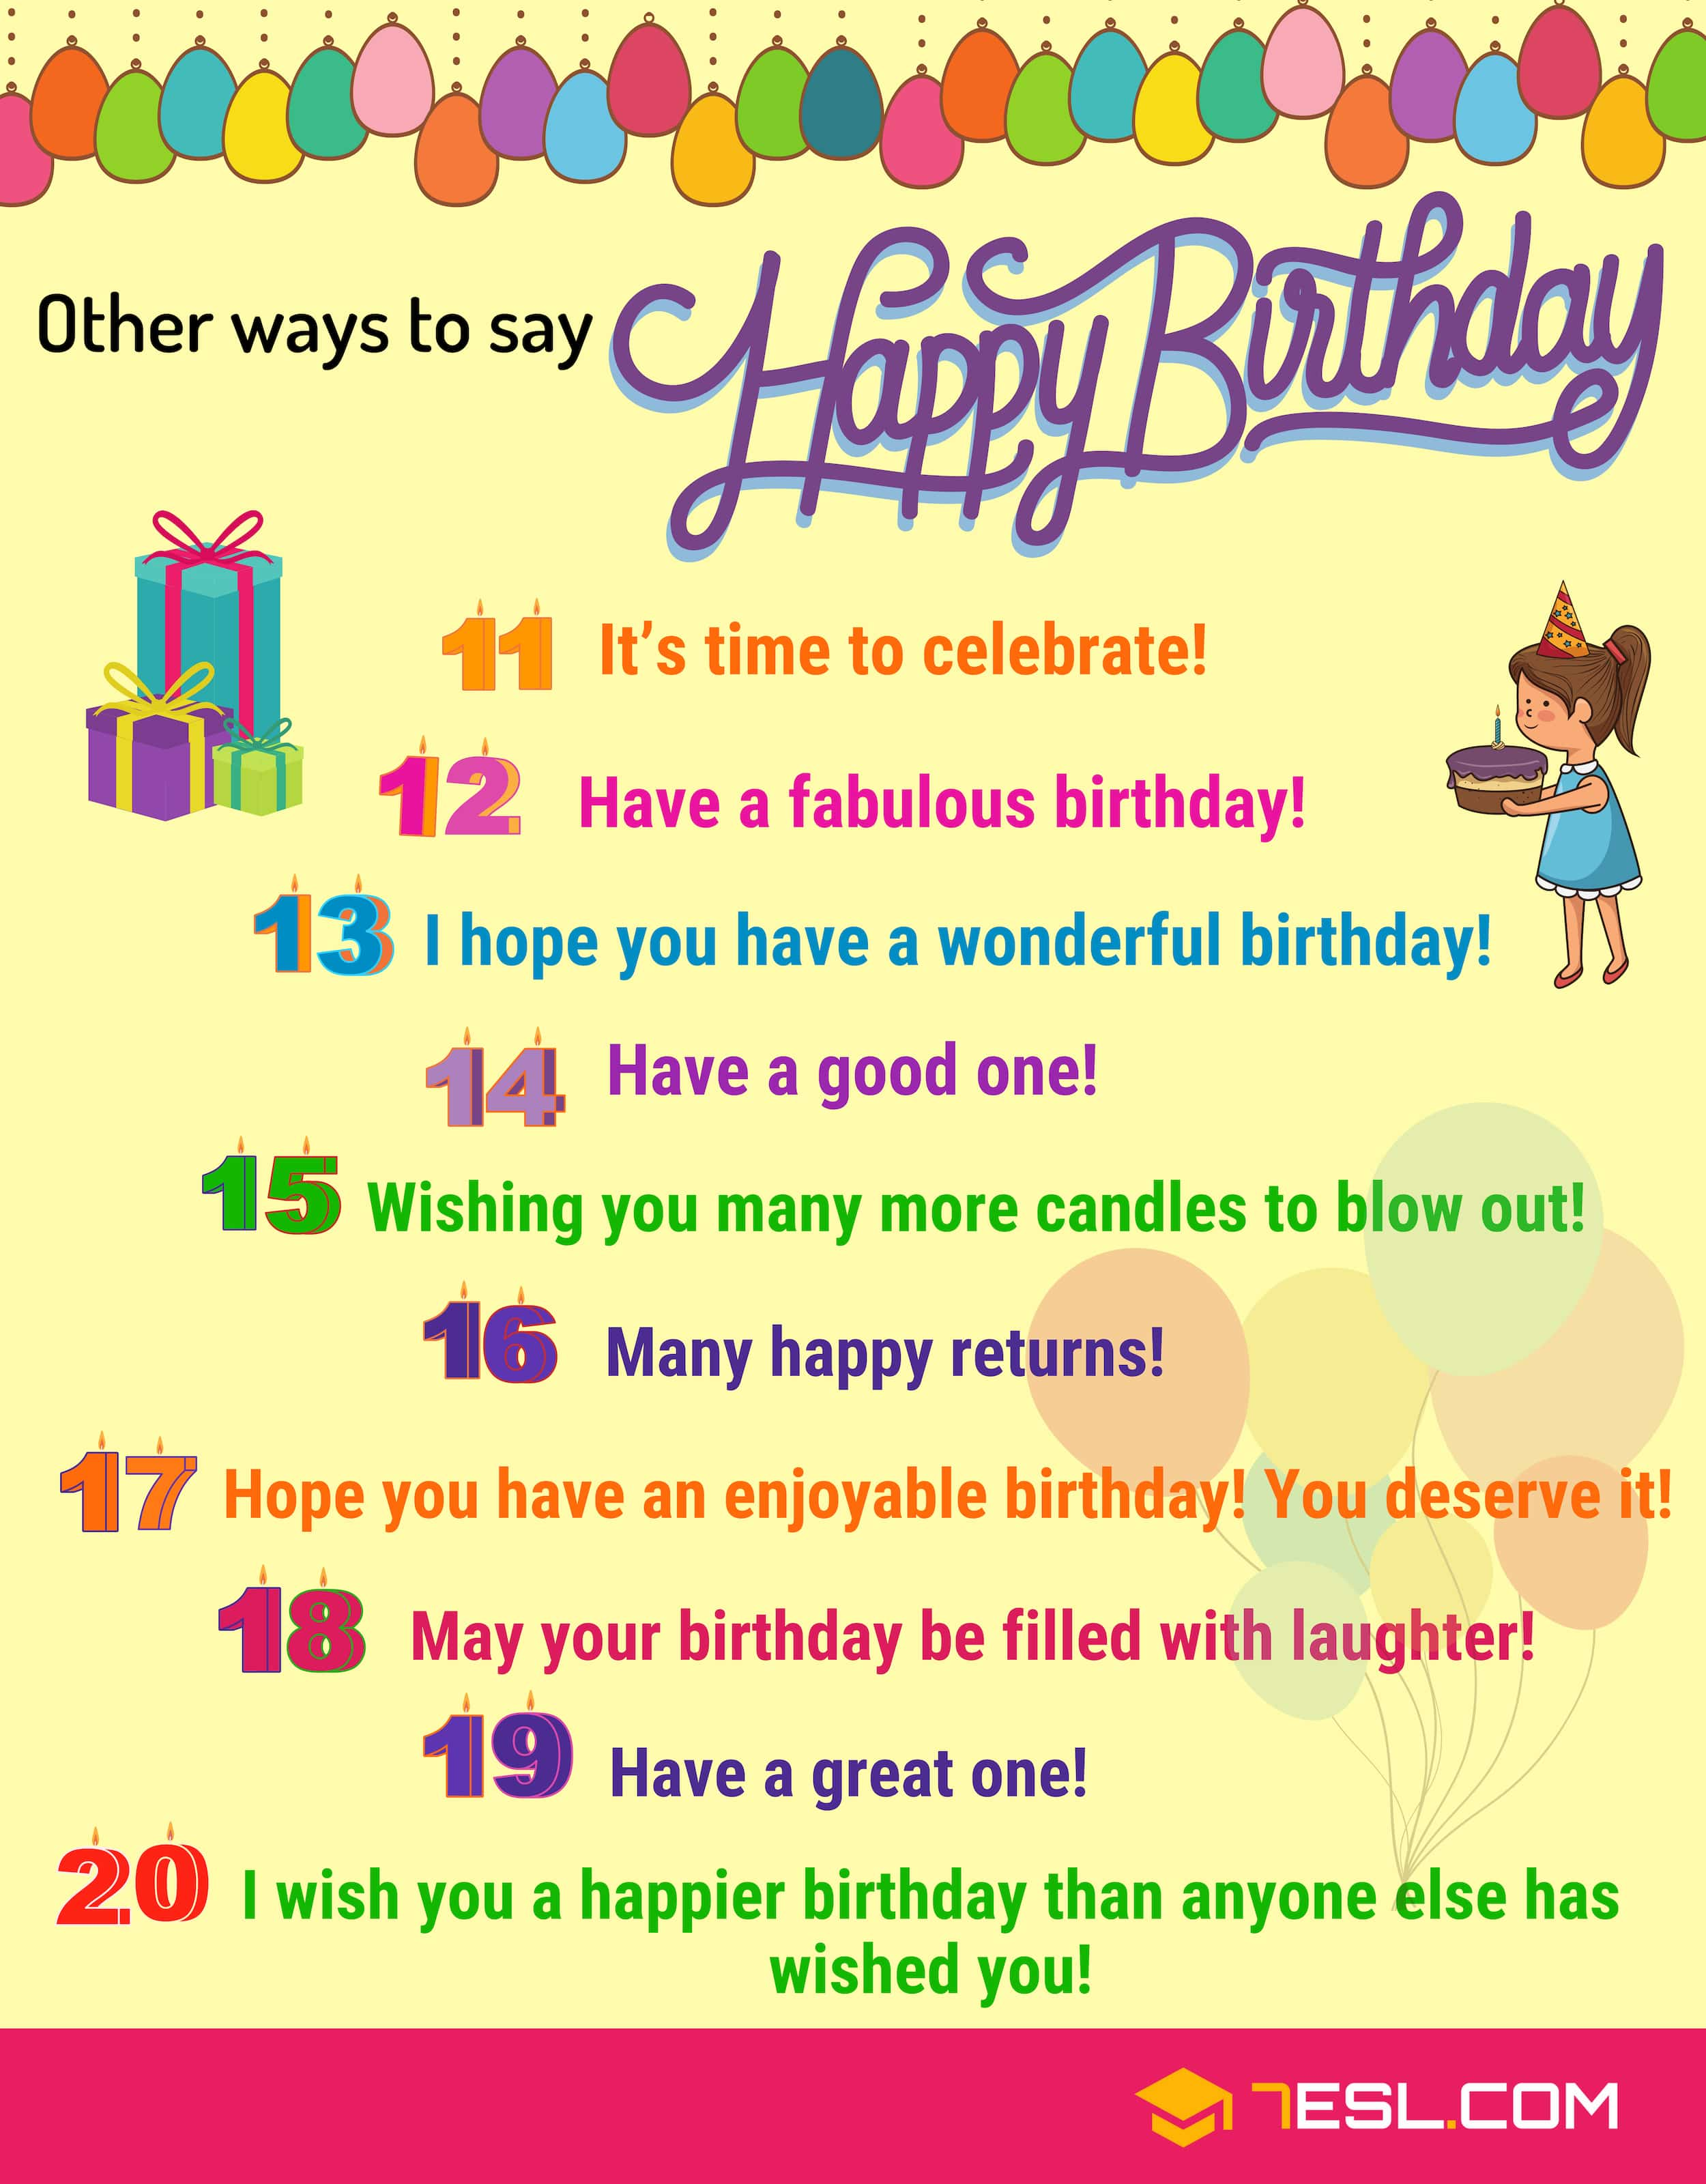 25+ Ways to Say HAPPY BIRTHDAY! in English 2